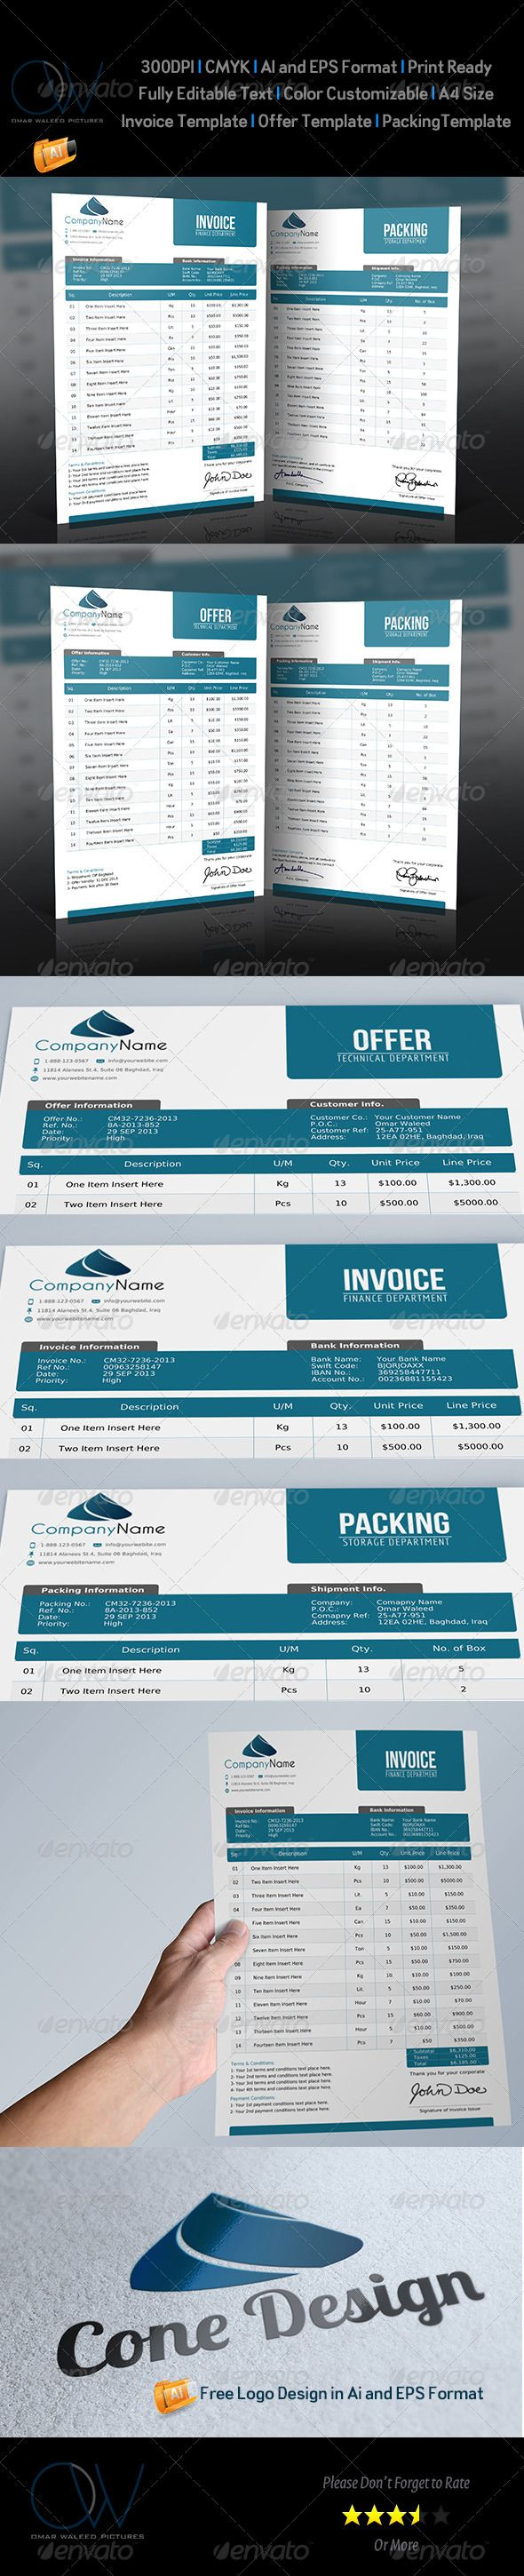 Offer and Packing and Invoice Template Vol1